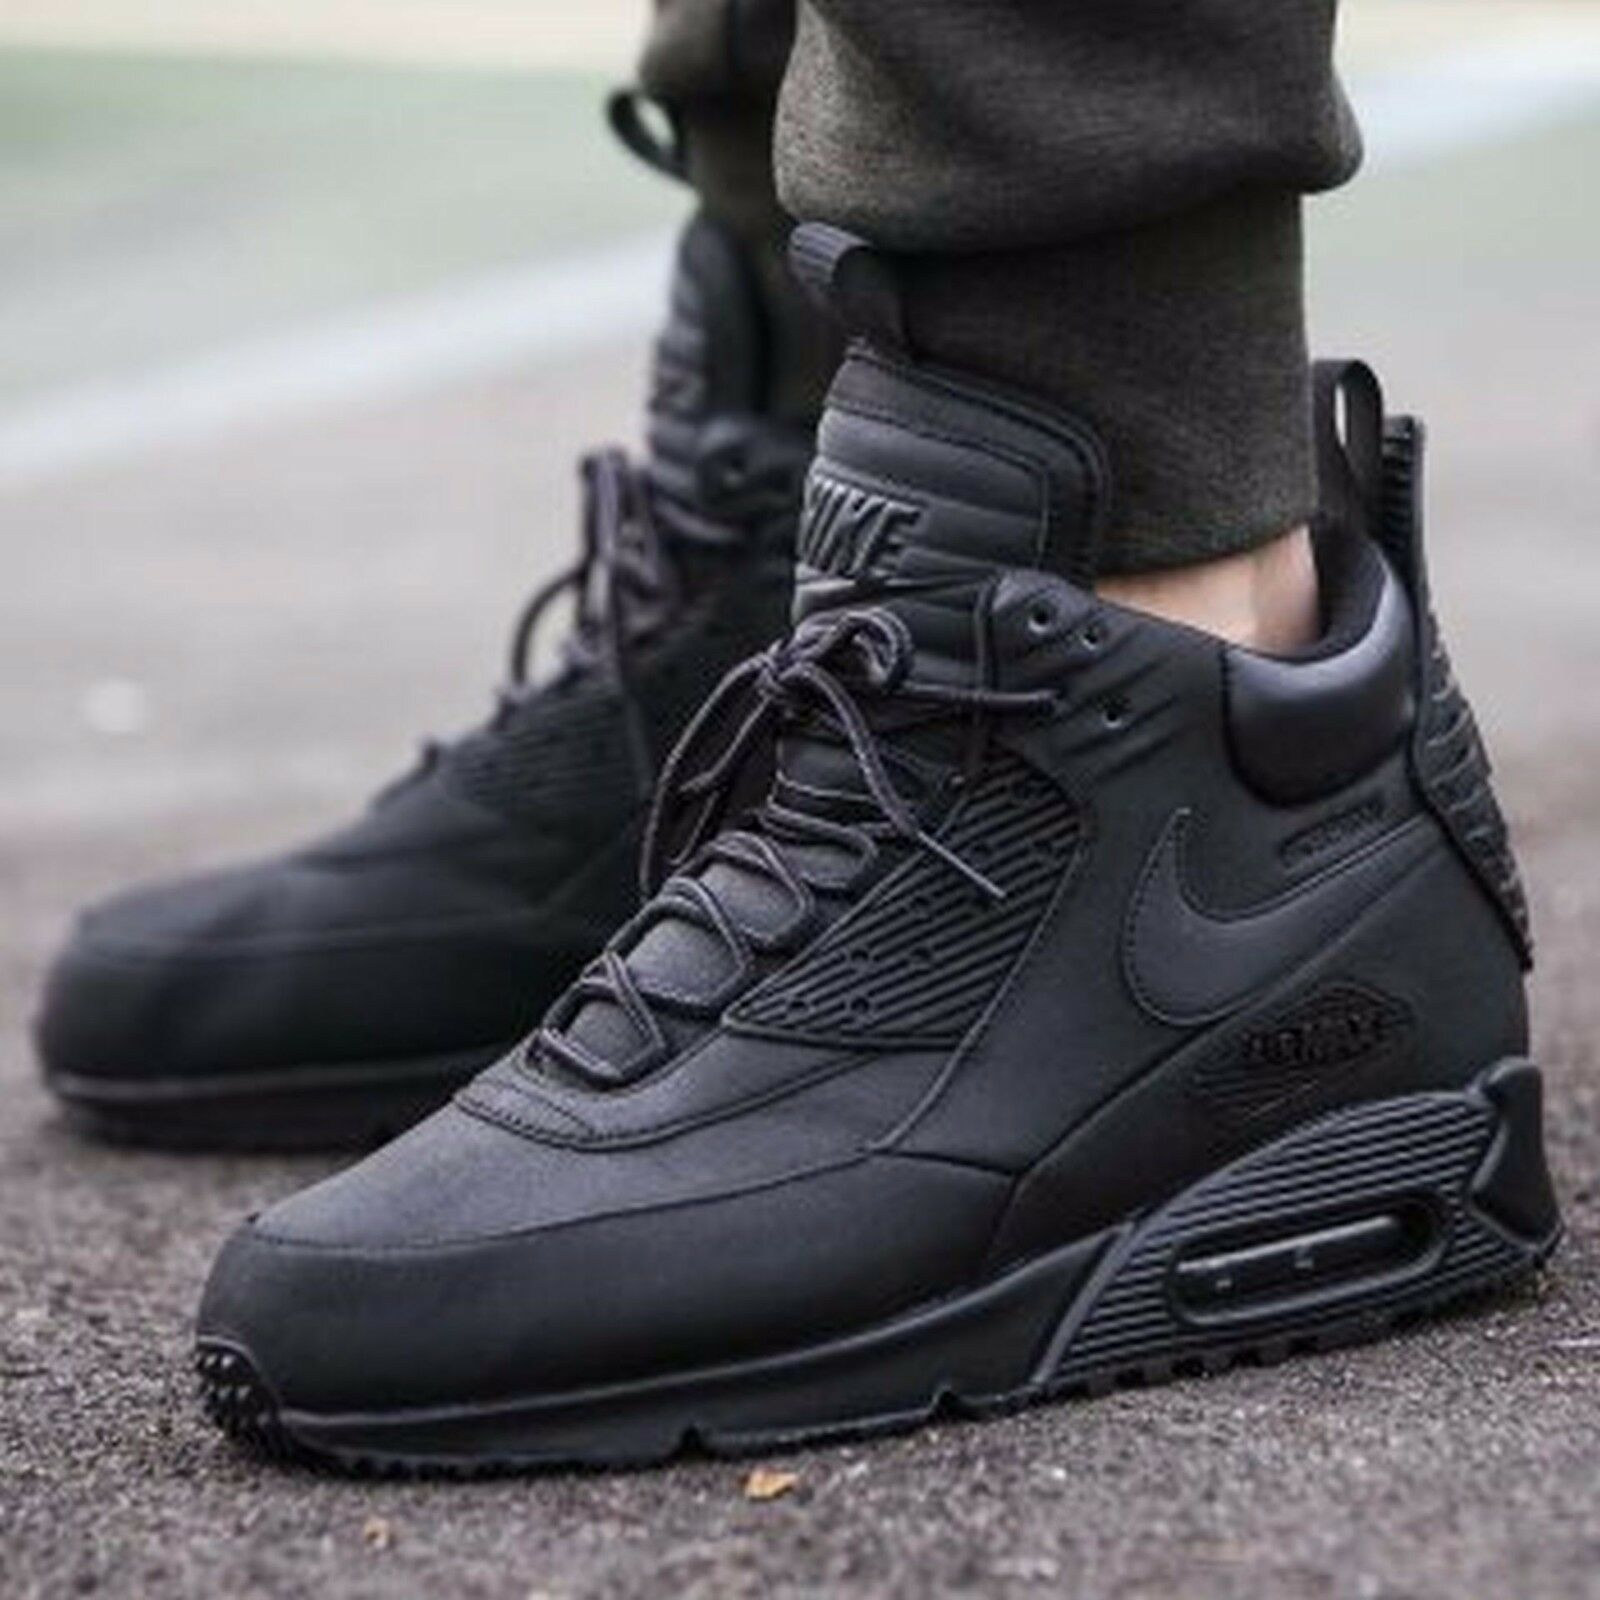 Nike Footwear Air Max 90 Sneakerboot Ice Black